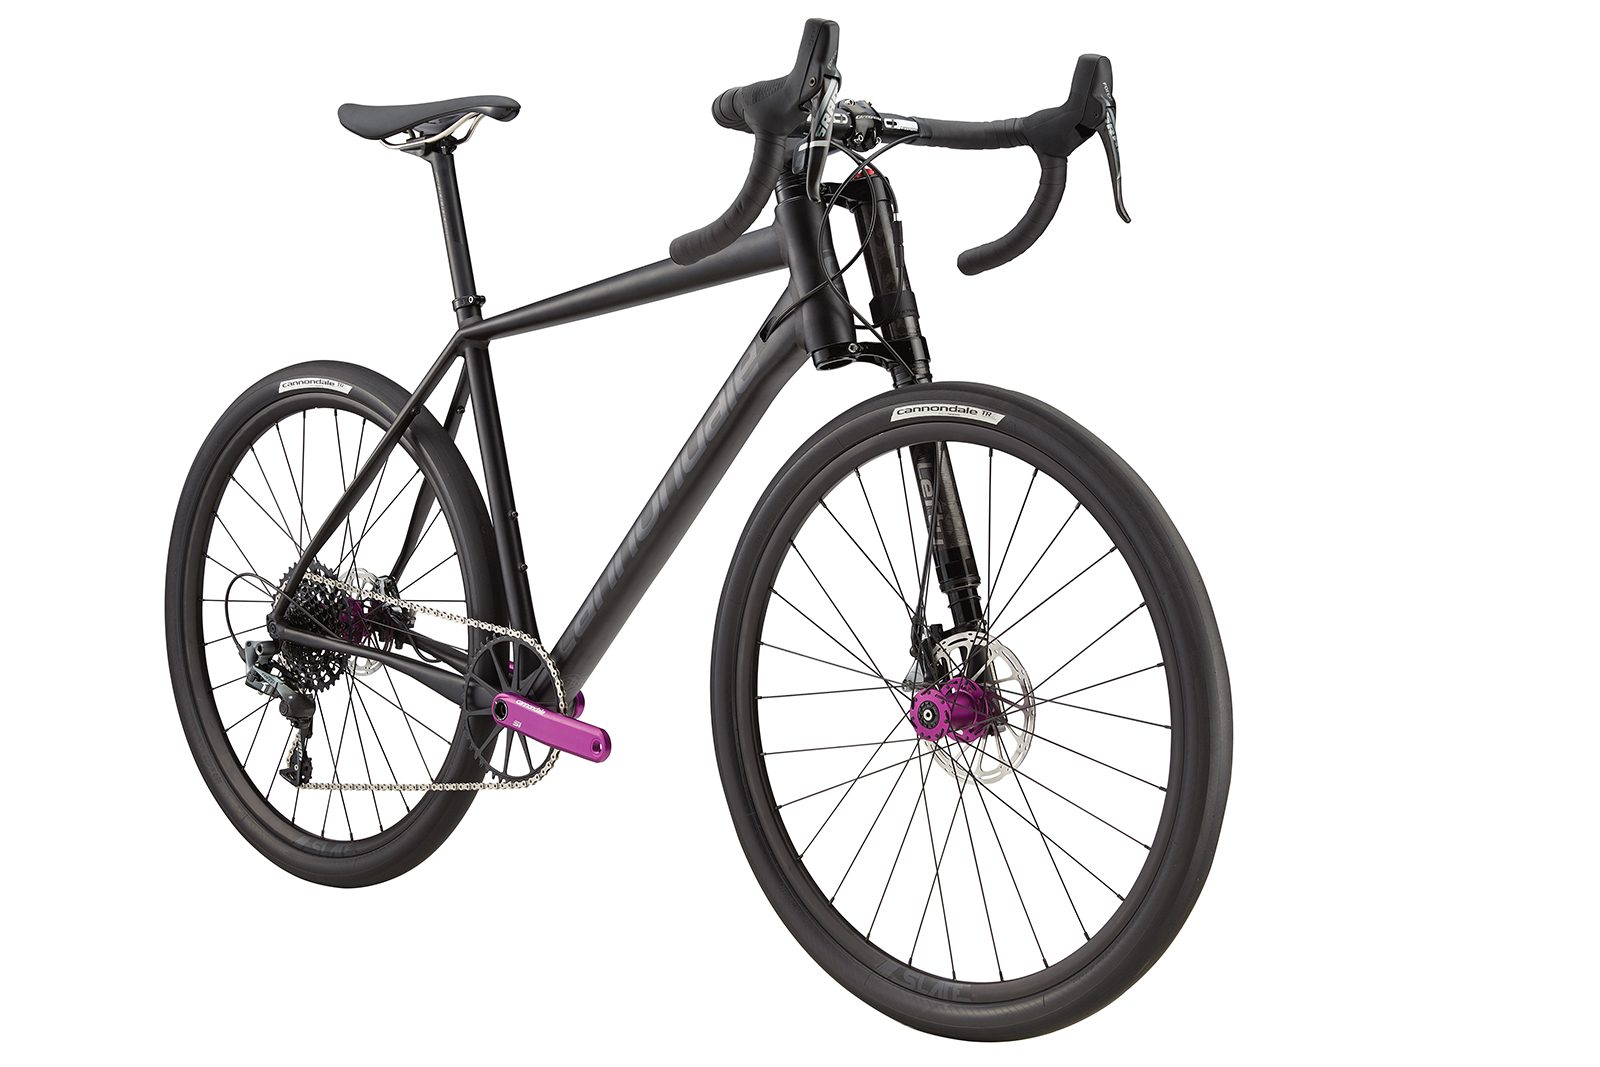 Cannondale S Slate All Road Suspension Bike Is On The Way